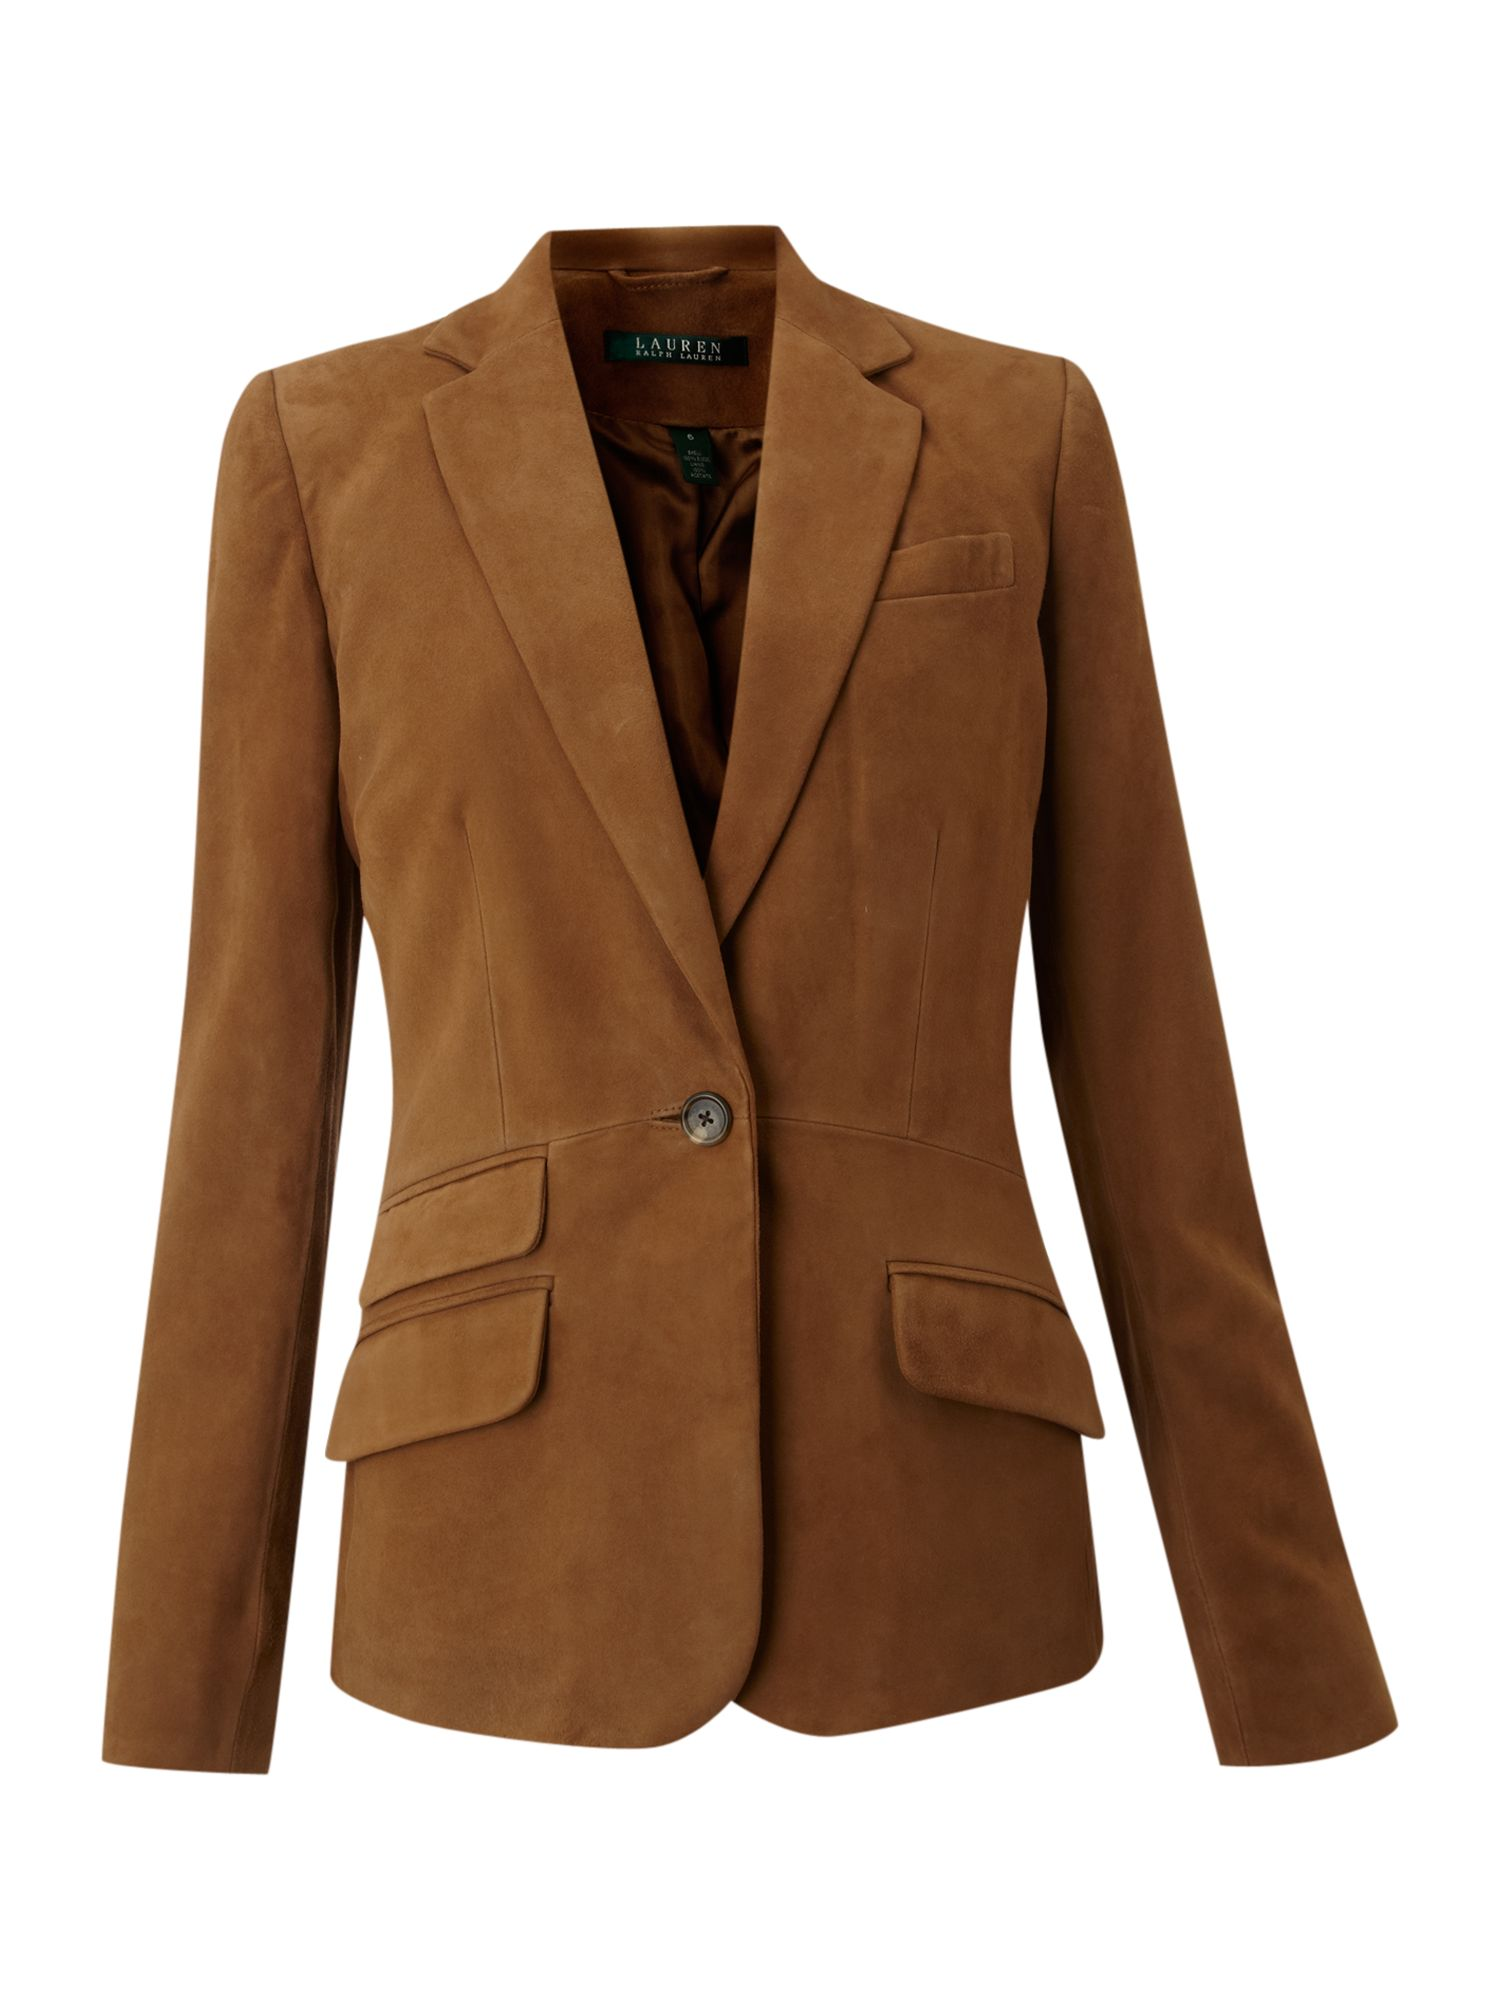 Suede Jacket Outfits For Men 20 Ways To Wear A Suede Jacket: Lauren By Ralph Lauren Valerine Suede Jacket In Brown